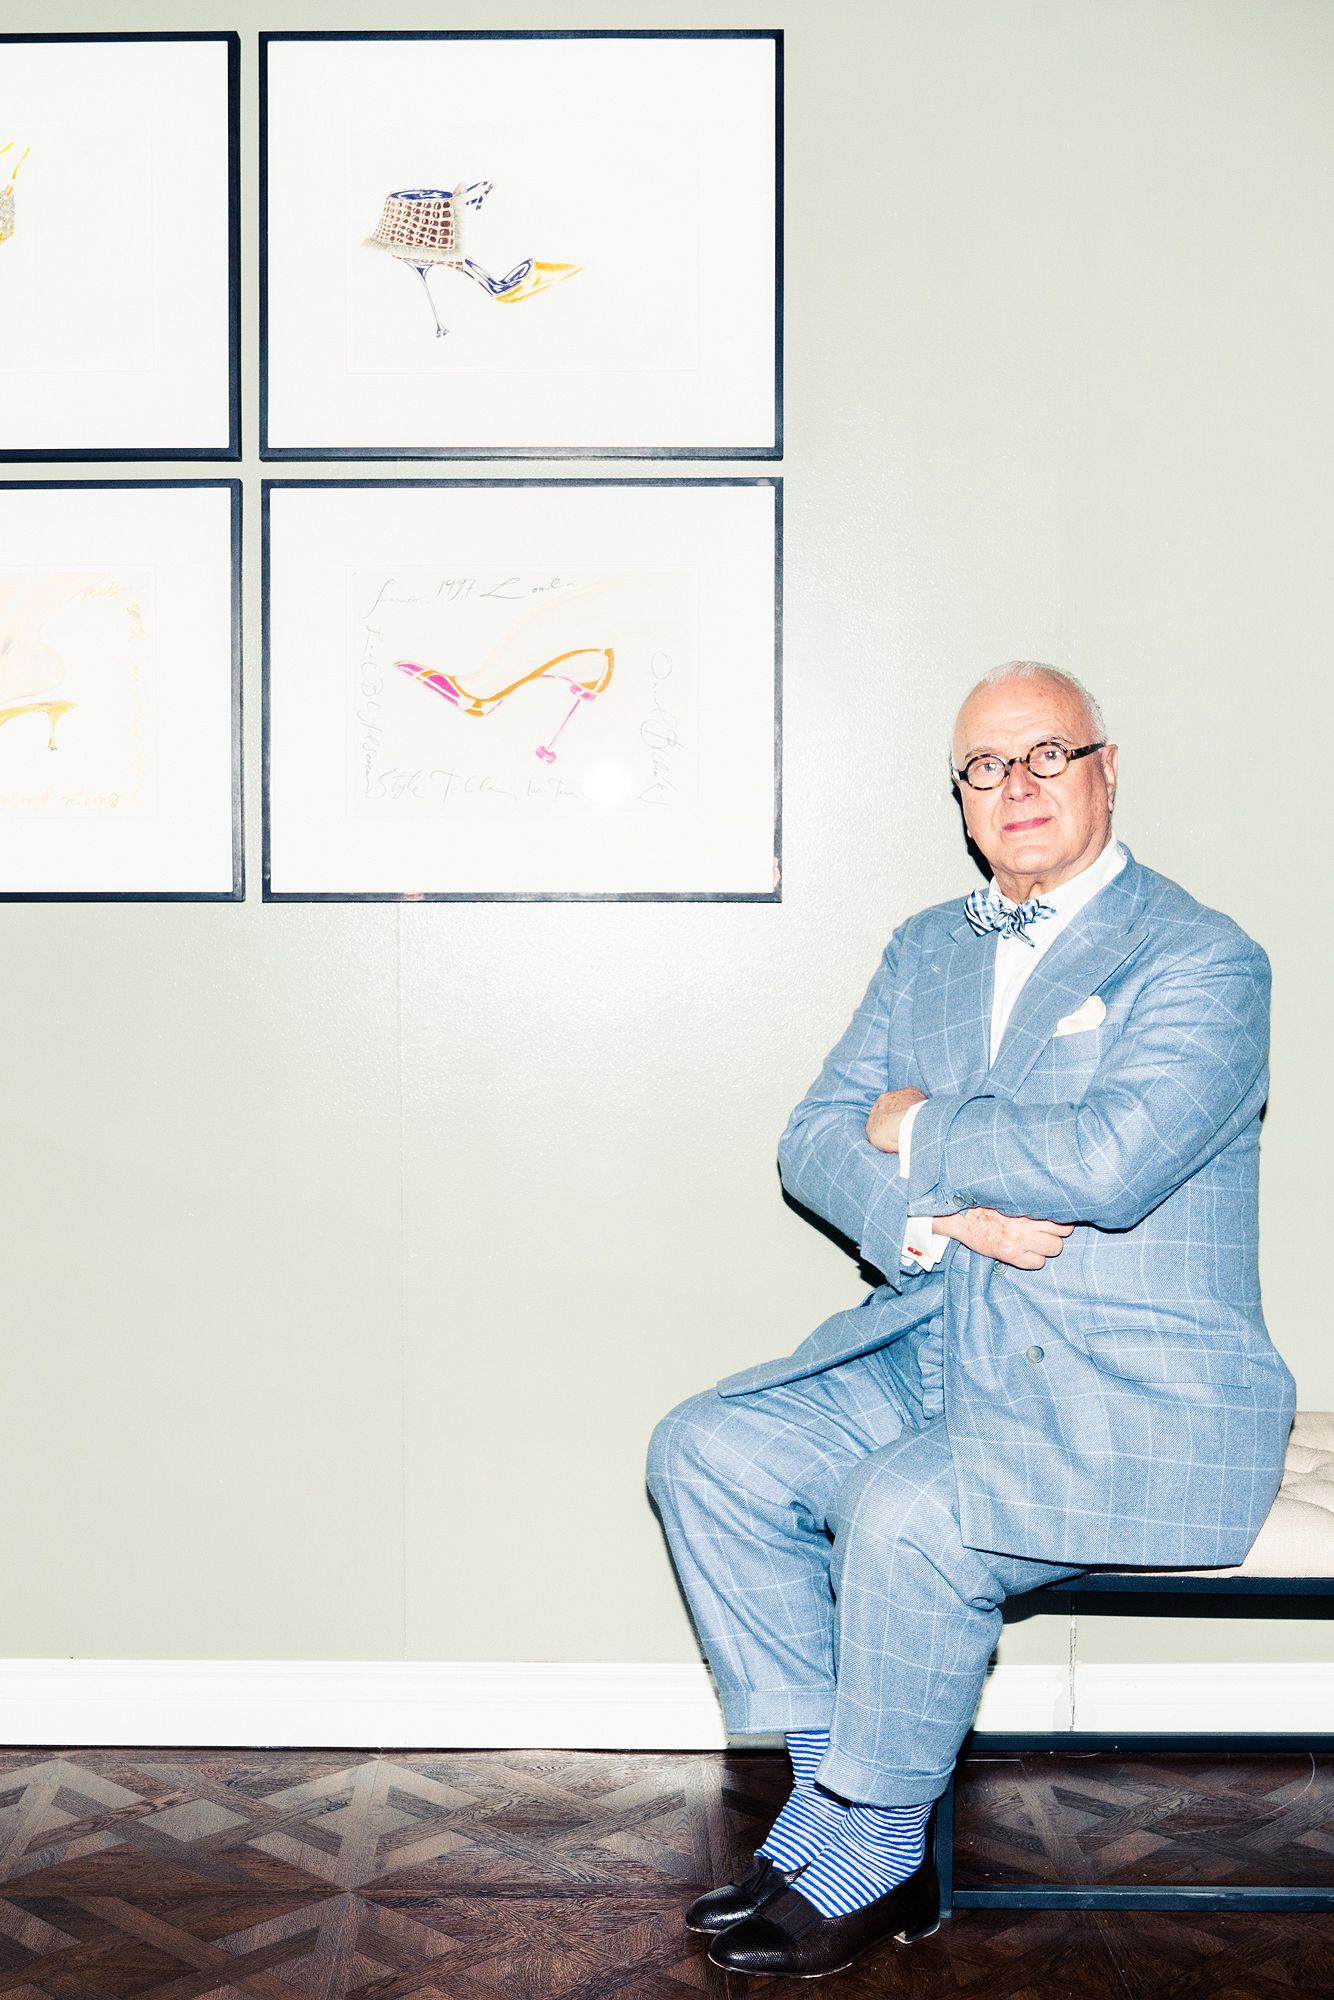 Manolo blahnik on his recent collaborations rihanna and for Shoe designer manolo blahnik